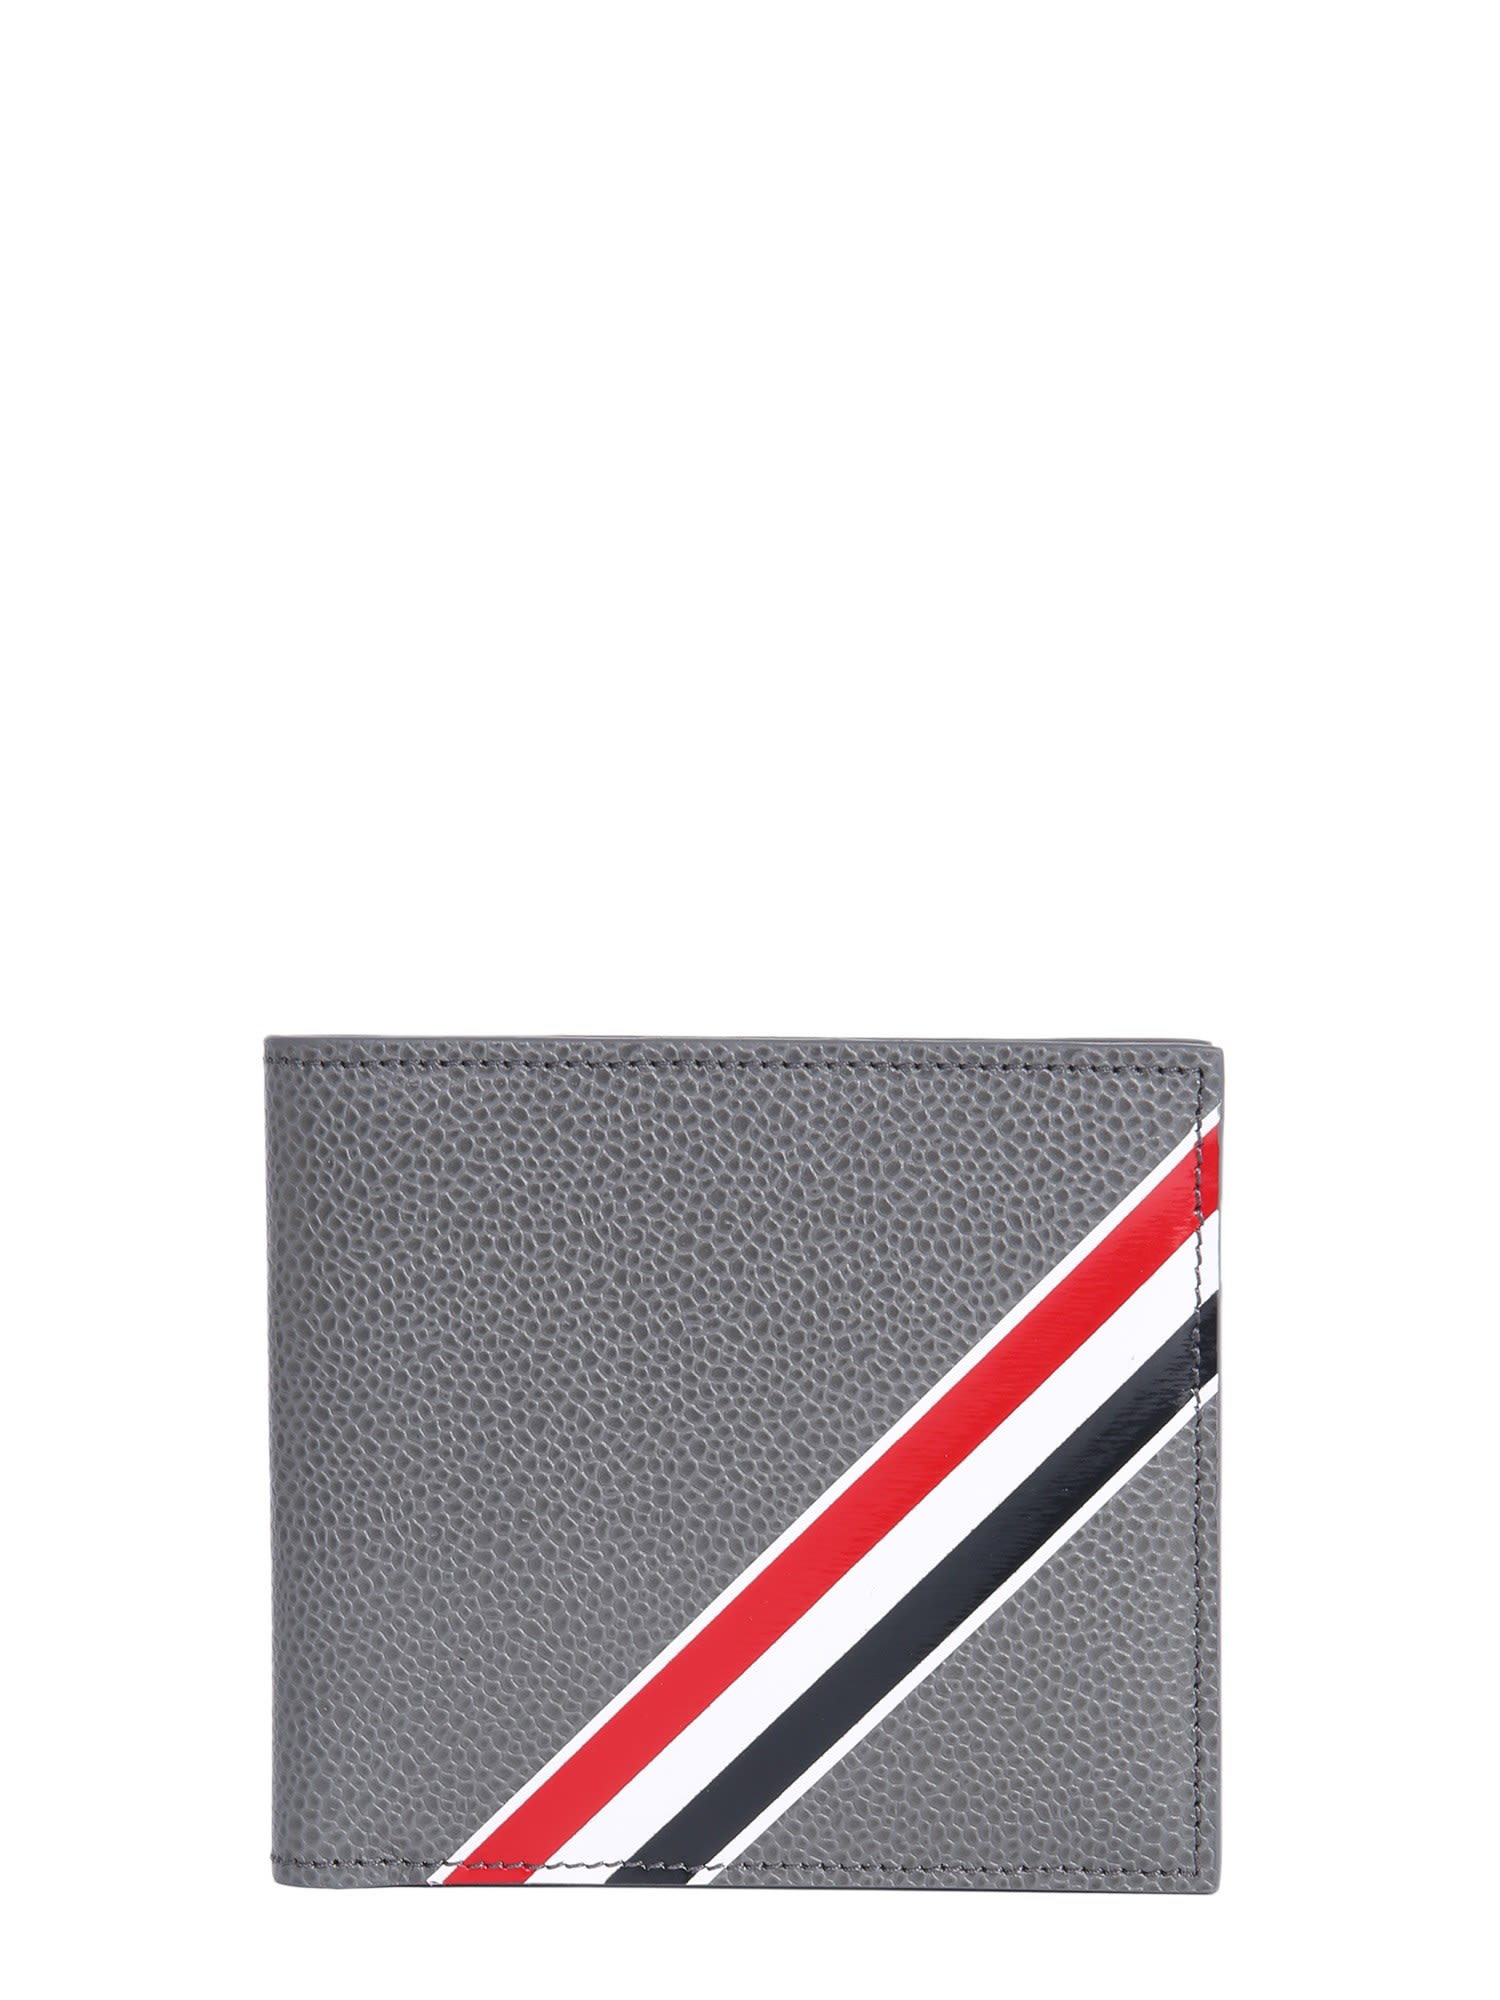 THOM BROWNE GRAINED LEATHER BIFOLD WALLET